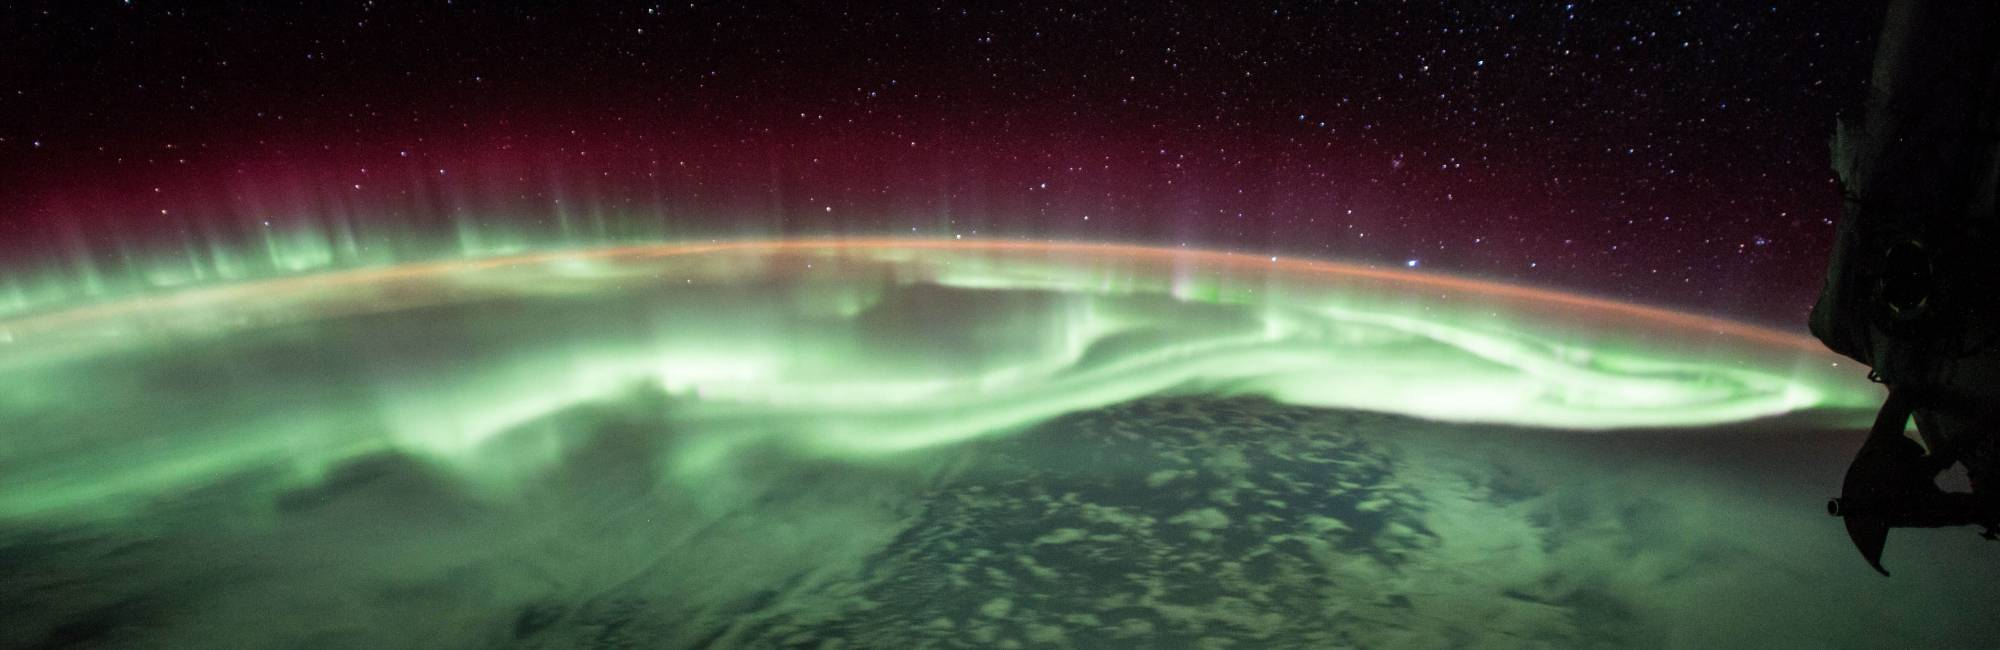 Photo of an aurora captured by the International Space Station.